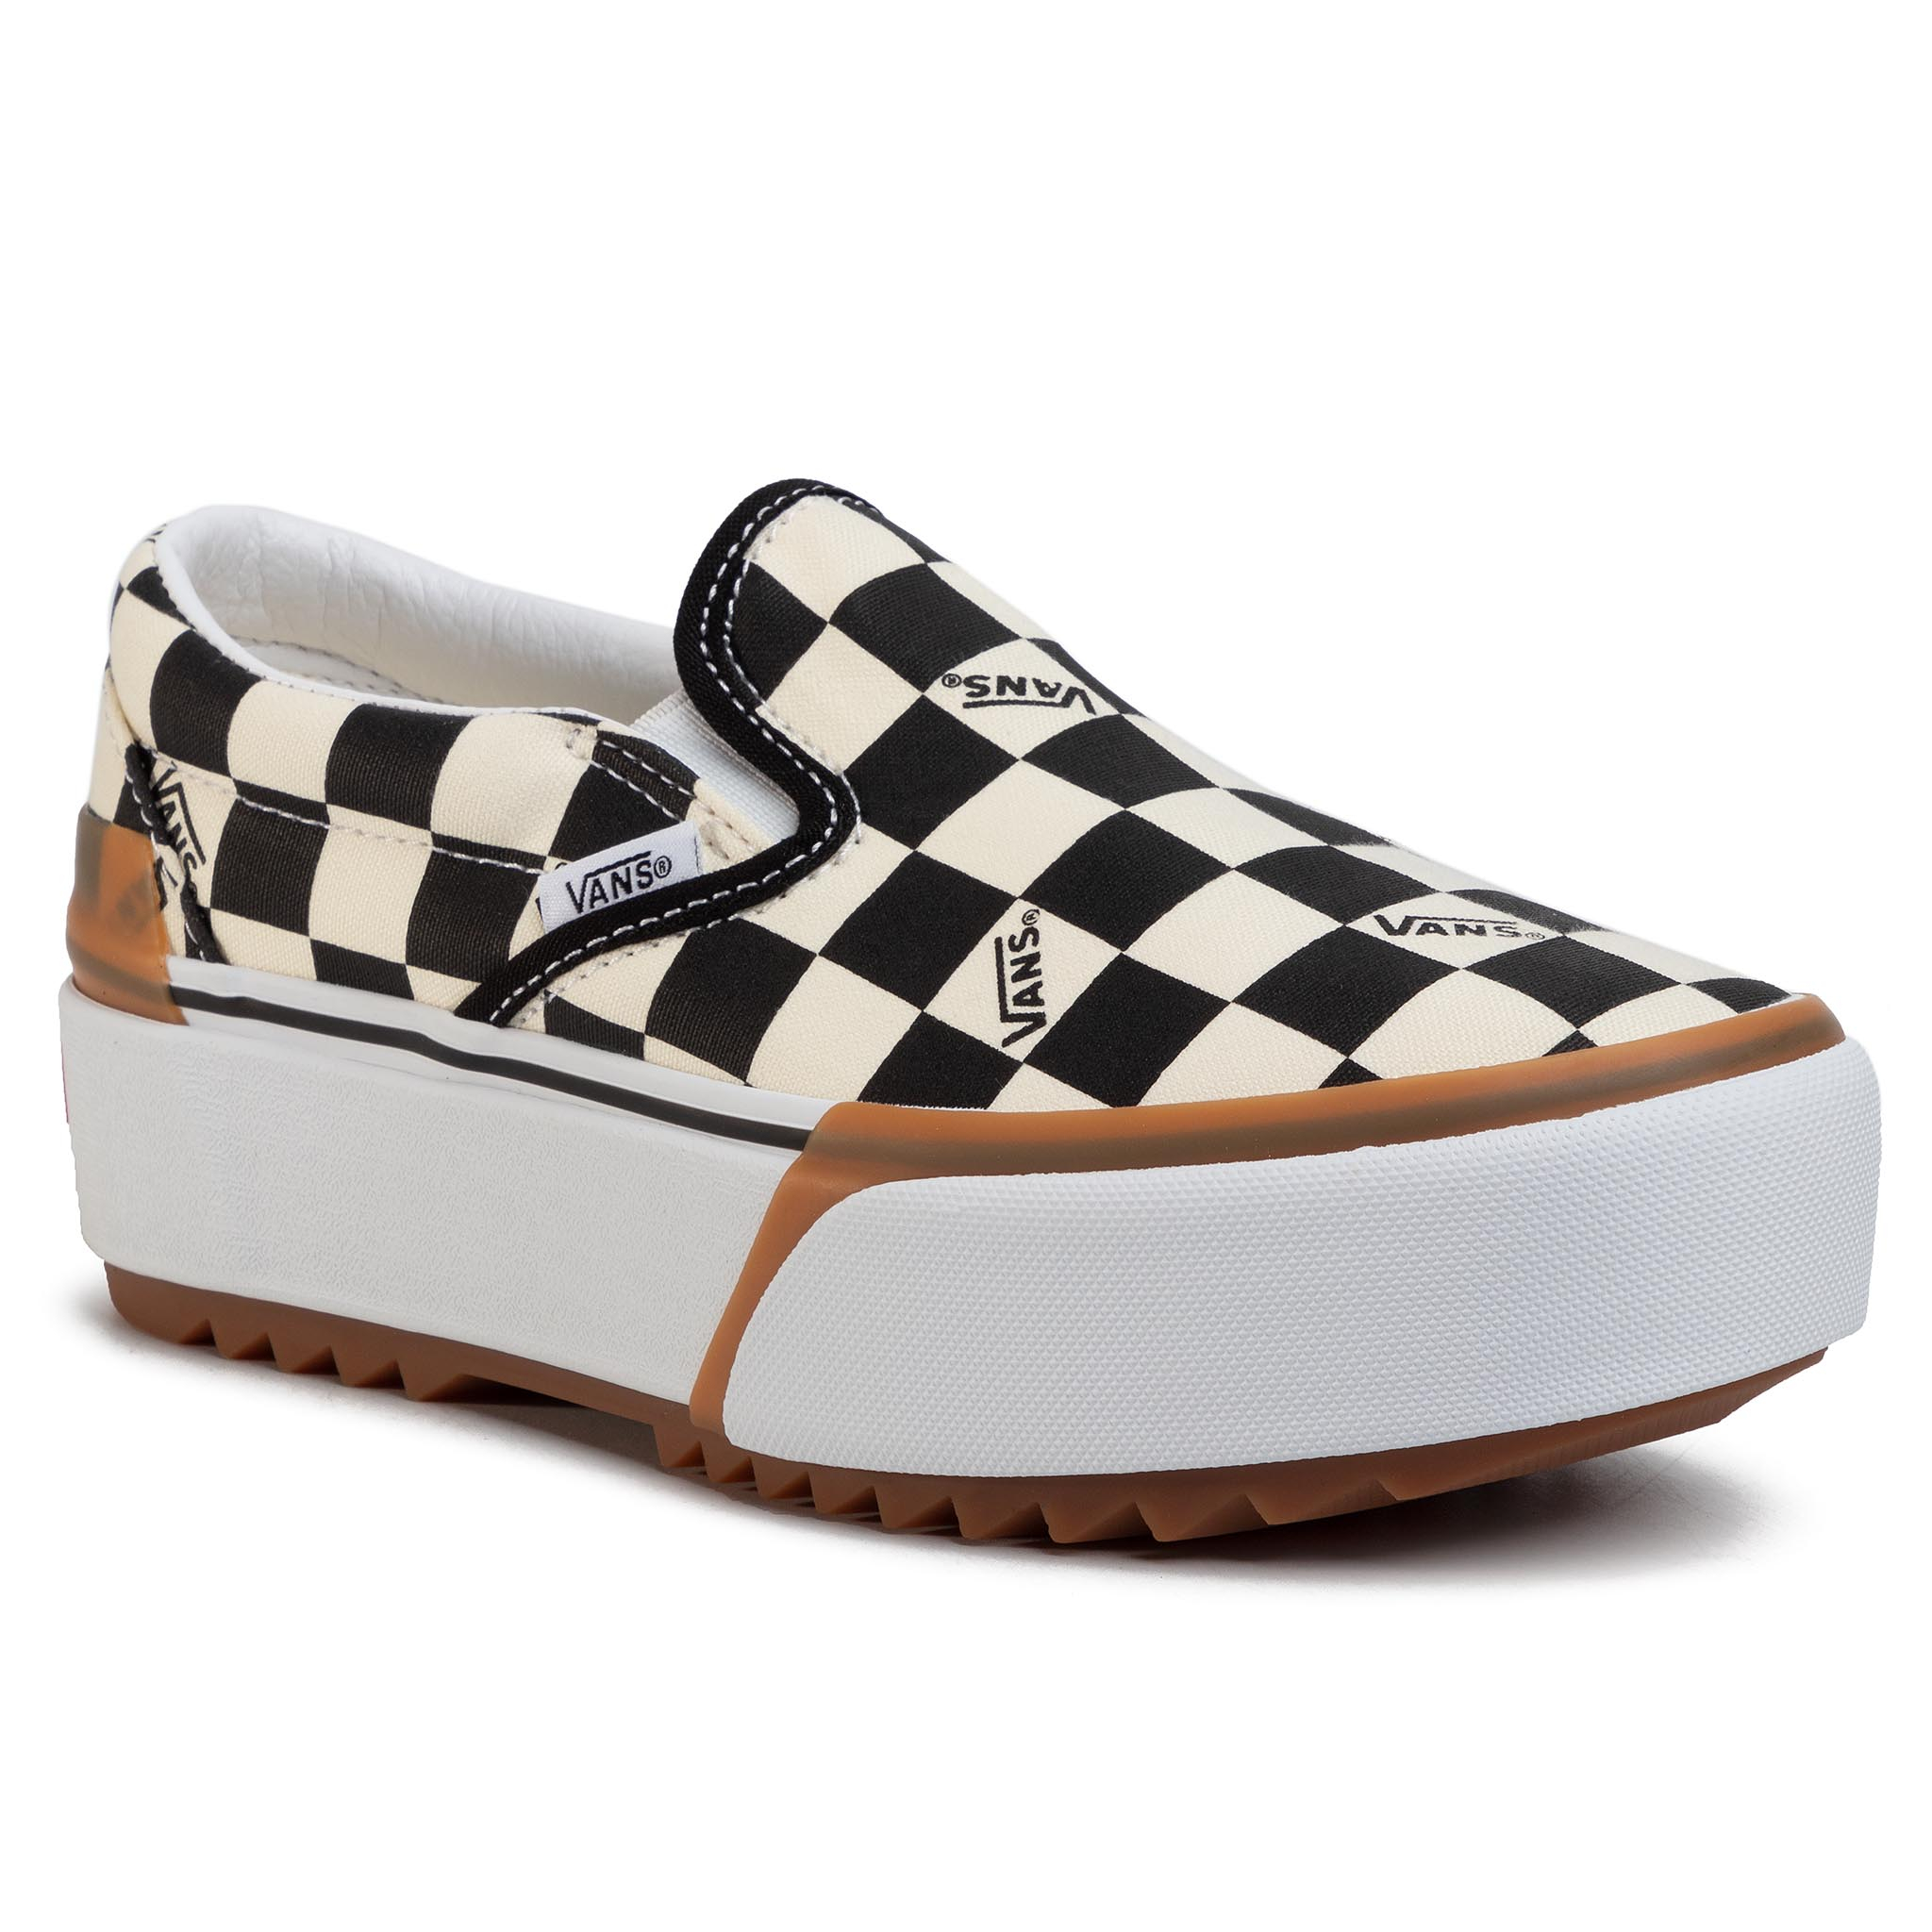 Teniszcipő VANS Classic Slip On S VN0A4TZVVLV1 (Checkerboard) MultiTrue